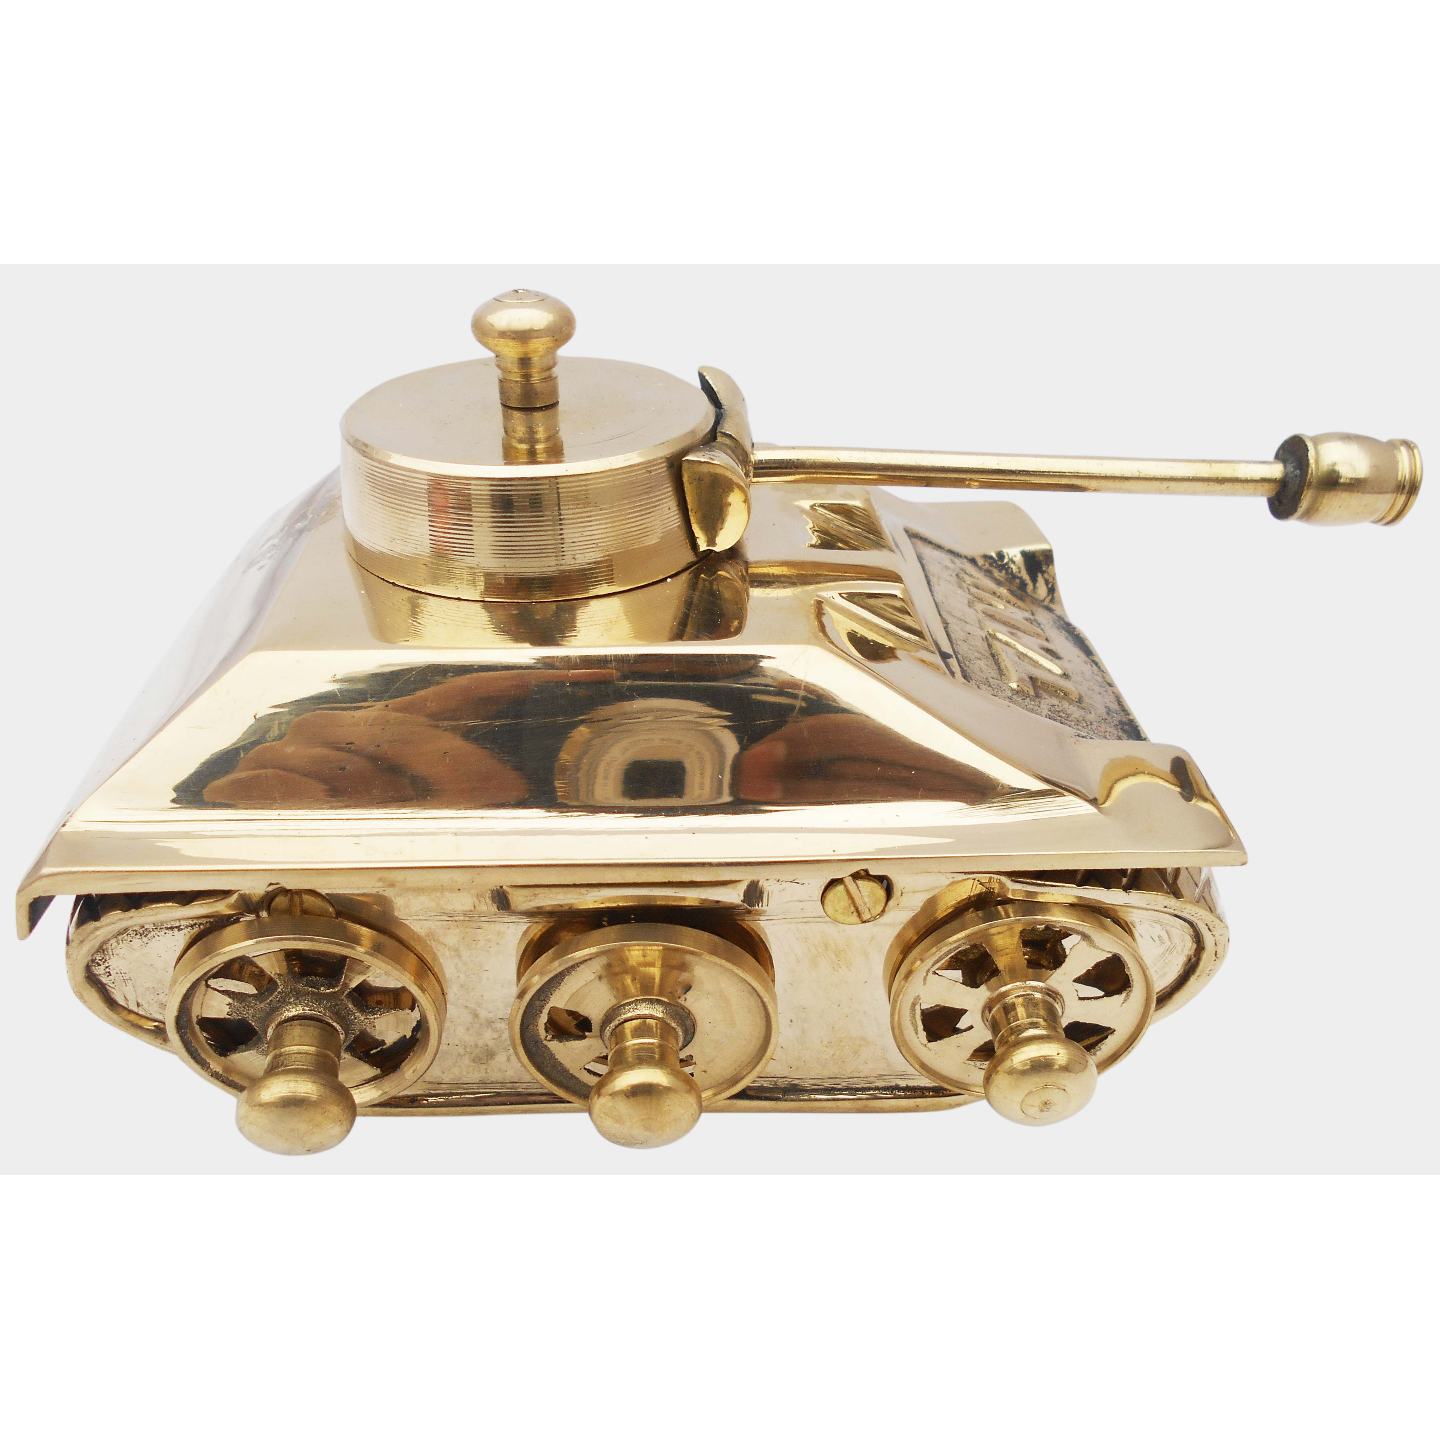 Brass Tank Toy Miniature For Children Playing- 7*5.5*4 Inch  (Z329 D)